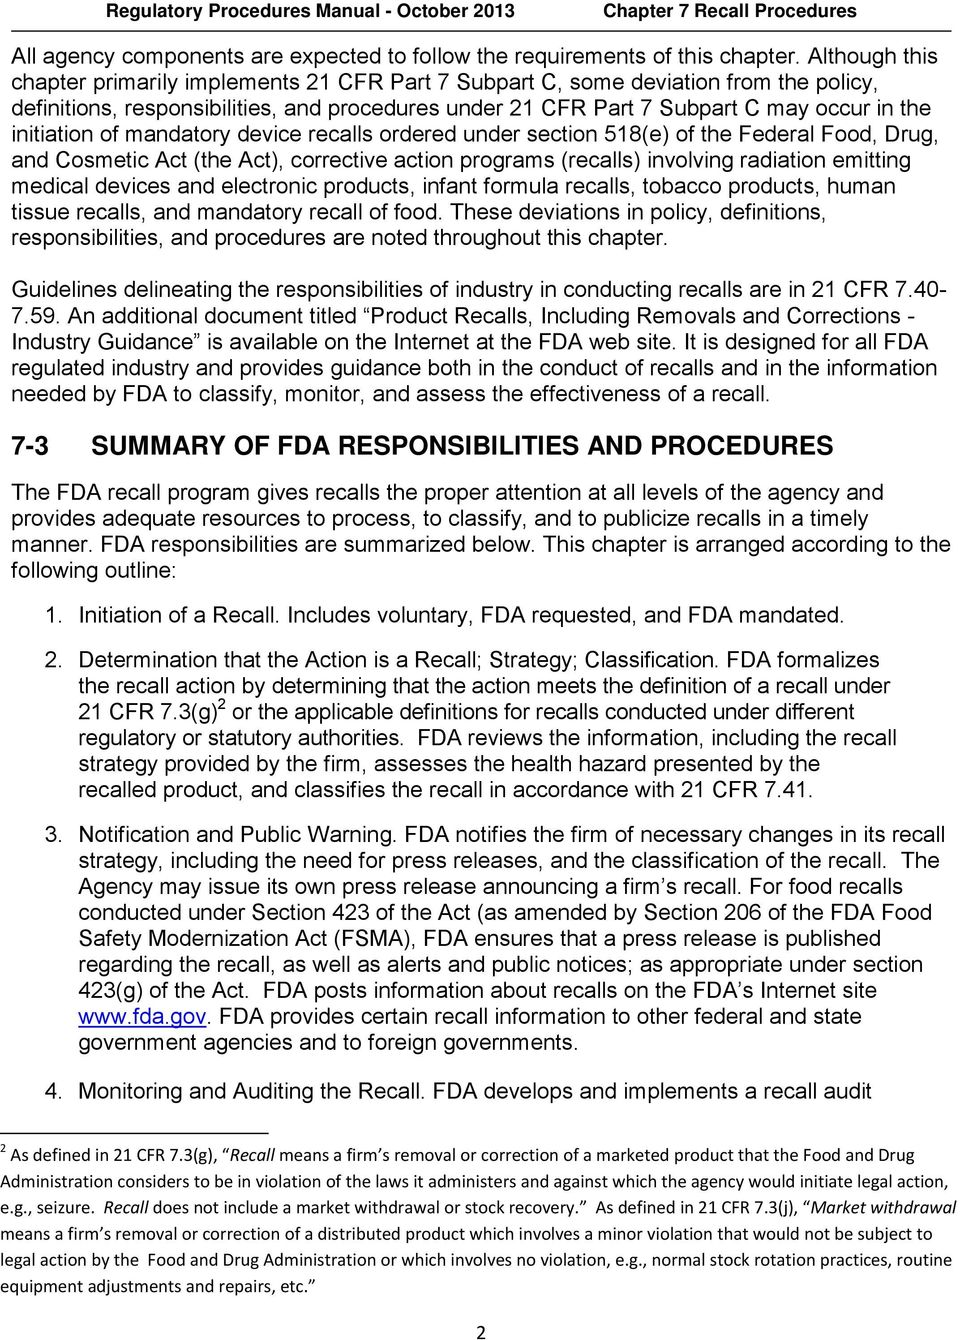 initiation of mandatory device recalls ordered under section 518(e) of the Federal Food, Drug, and Cosmetic Act (the Act), corrective action programs (recalls) involving radiation emitting medical